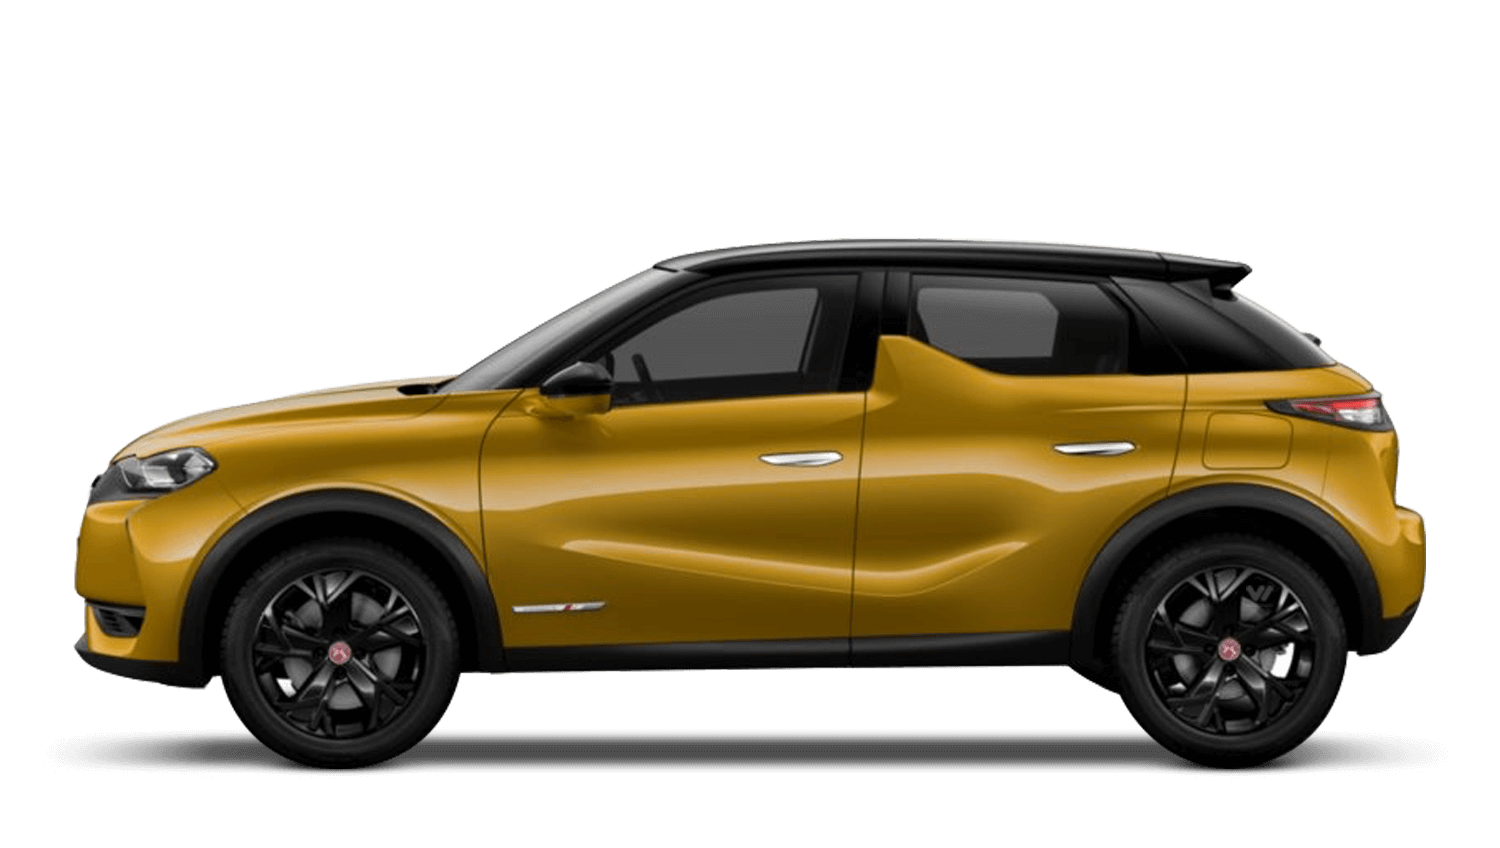 Imperial Gold (Metallic) DS 3 CROSSBACK E-Tense